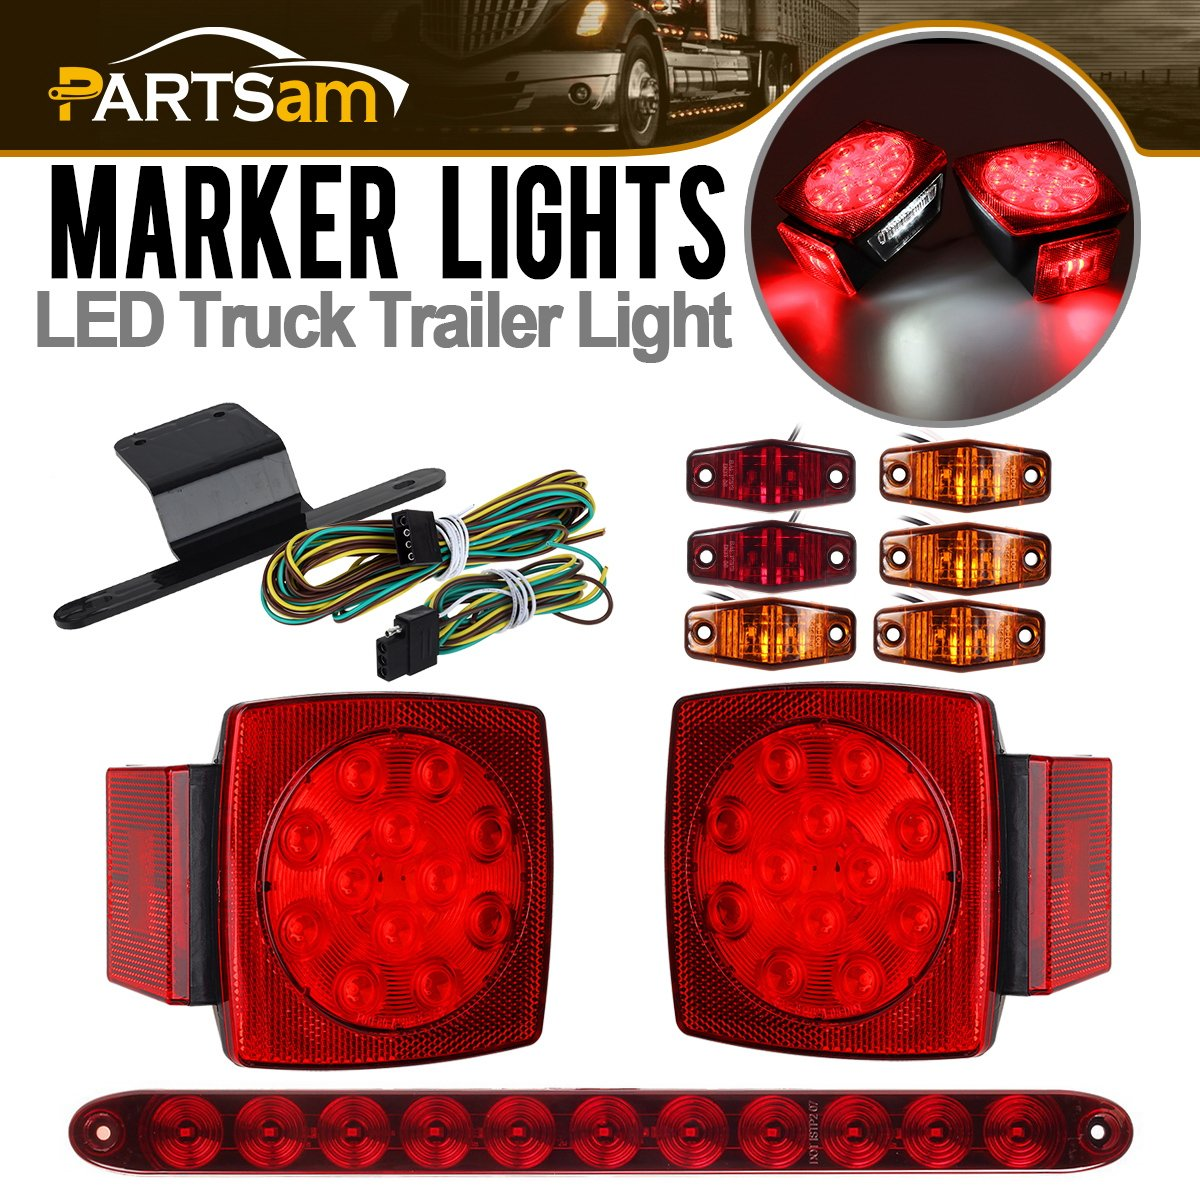 Partsam Submersible Under 80'' LED Trailer Light Kit,Square Stop Turn Tail RV Truck Lights w/Wire &Bracket,Red/Amber Side Fender Marker Lamps,3rd Brake ID Light Bar for Camper Truck RV Boat Snowmobile by Partsam